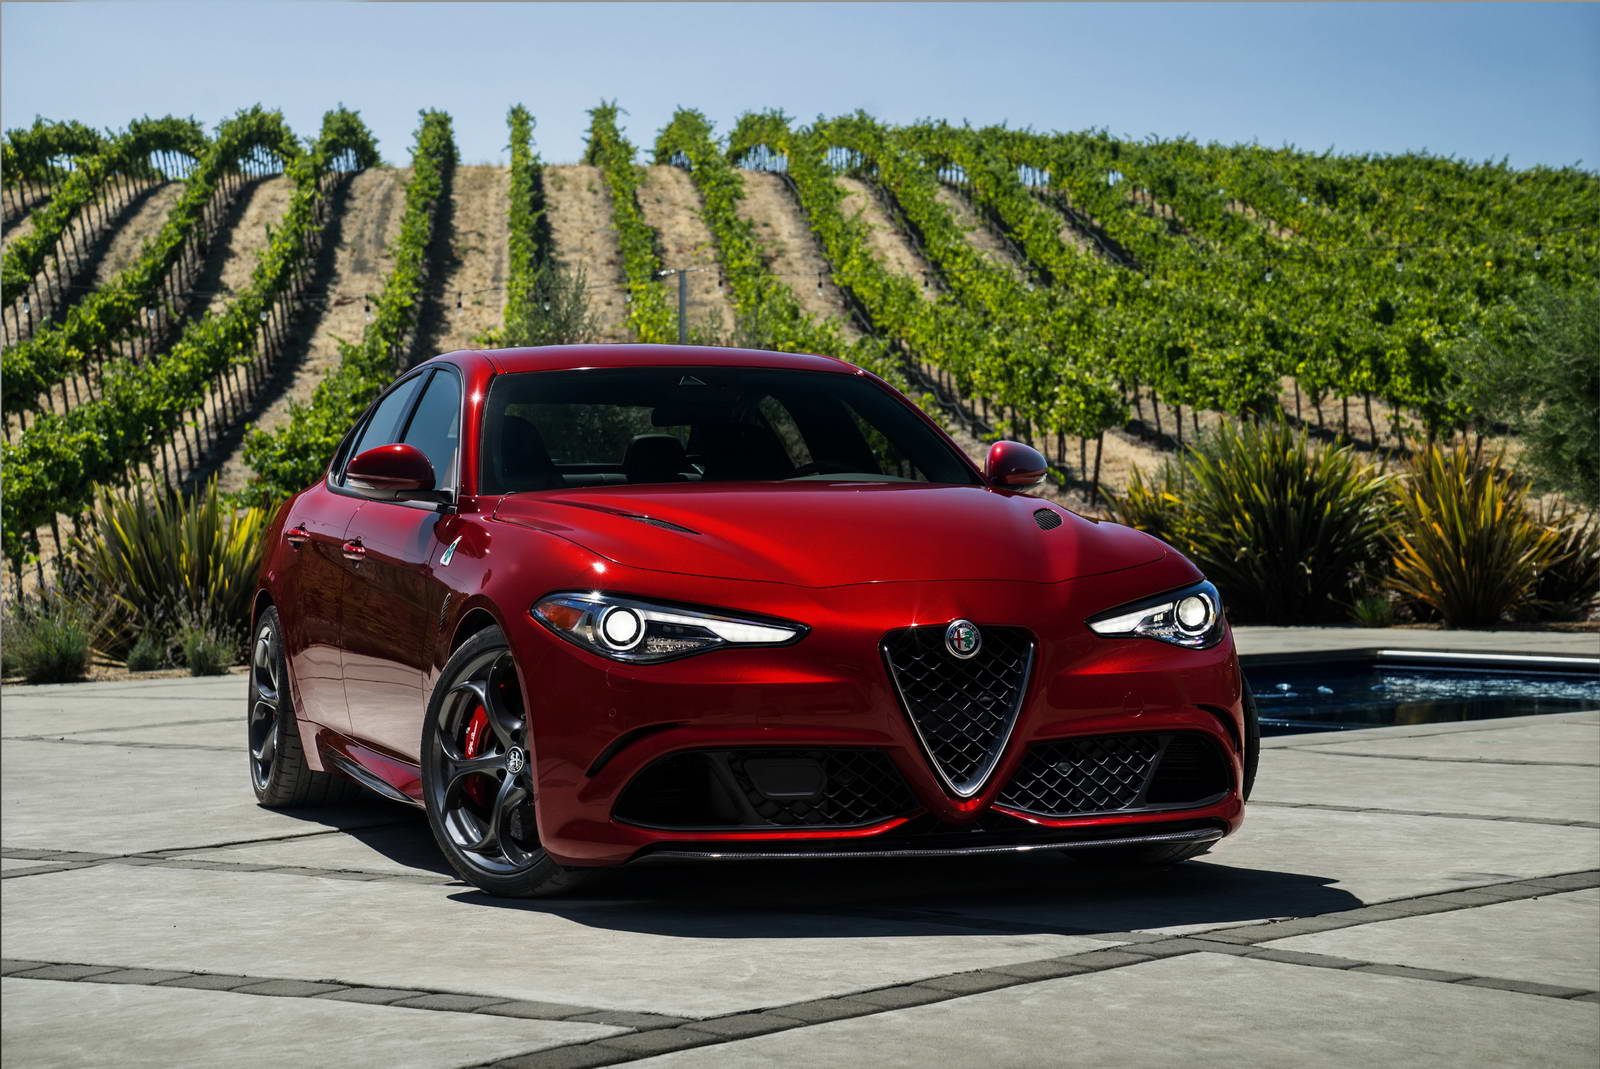 Alfa romeo giulia 2016 engine sound